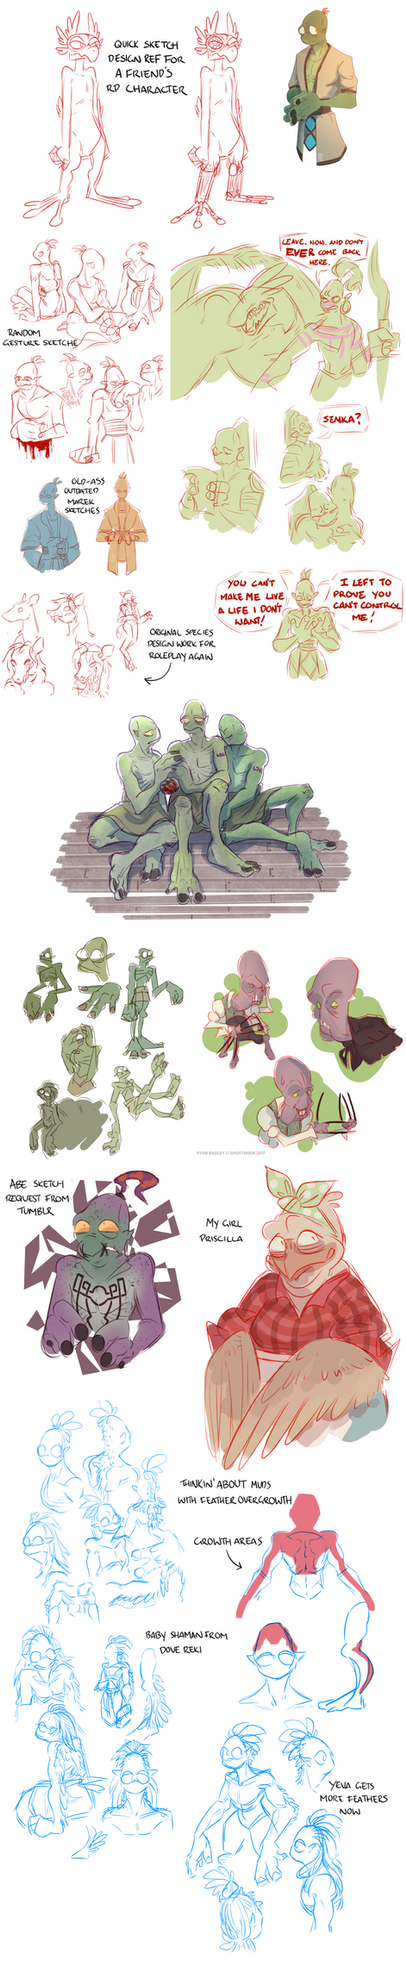 oddworld sketchdump 2: electric boogaloo by reckingstacks